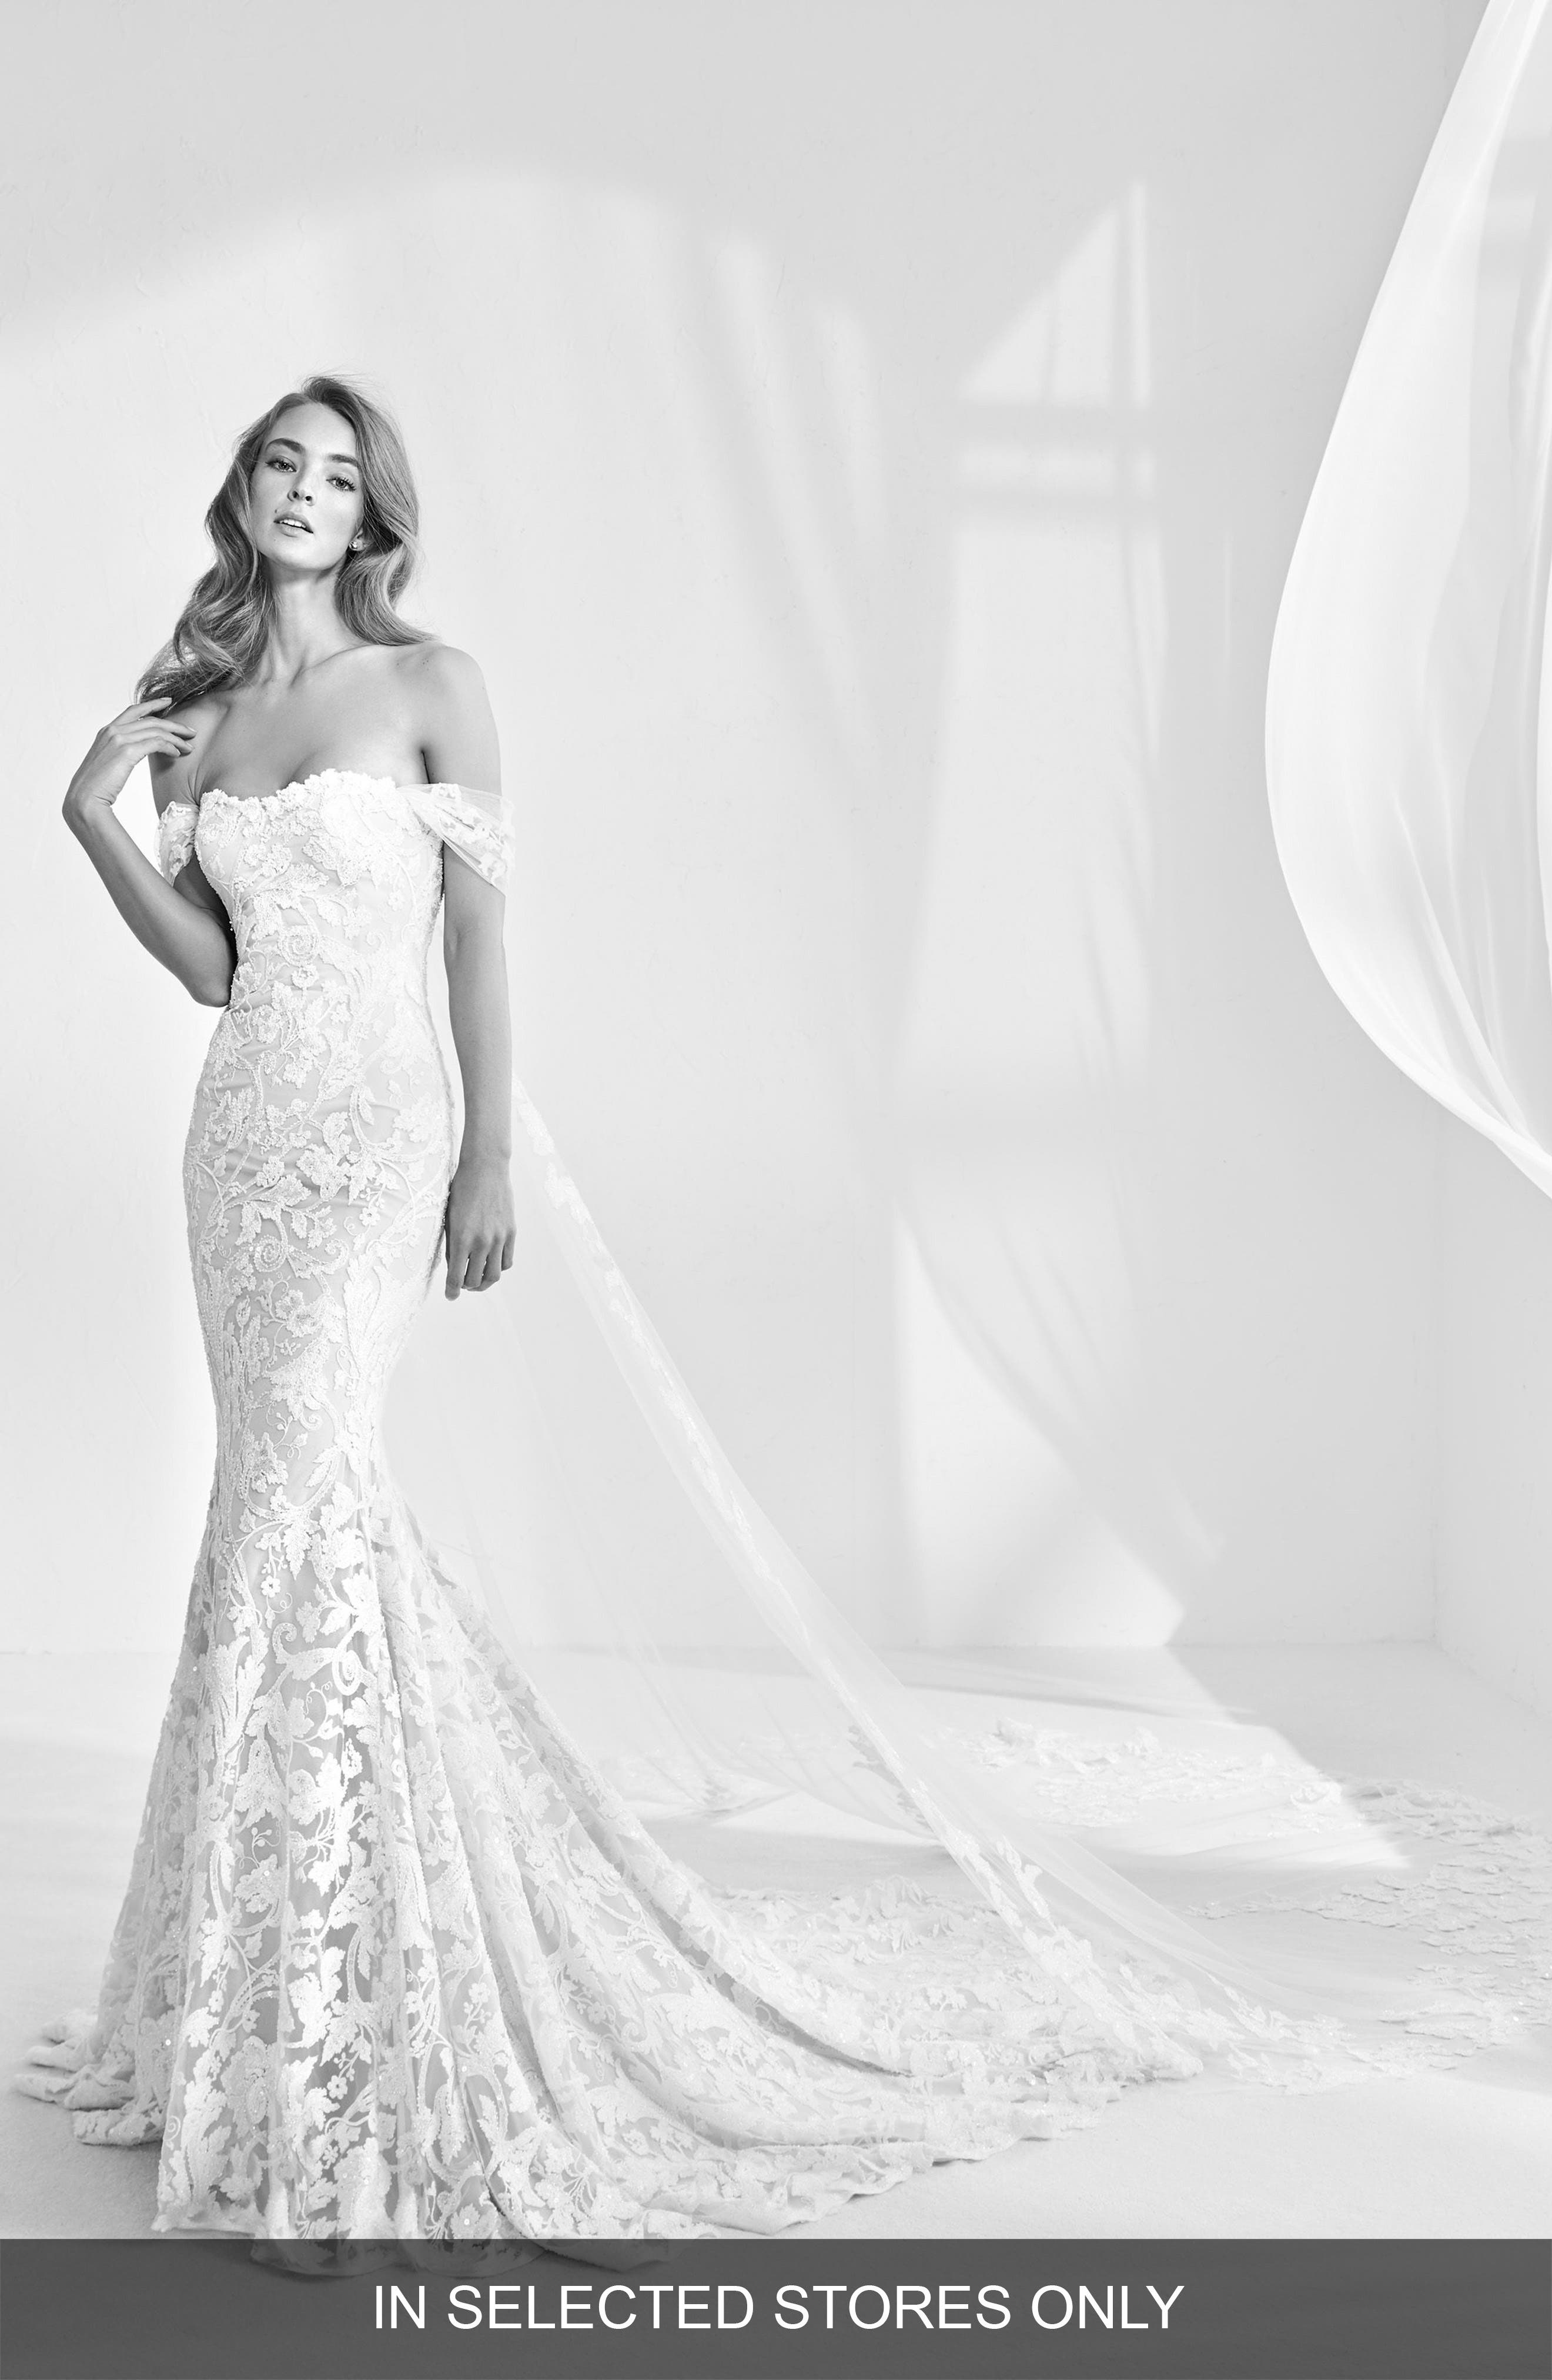 Alternate Image 1 Selected - Atelier Pronovias Rani Embellished Off the Shoulder Mermaid Gown